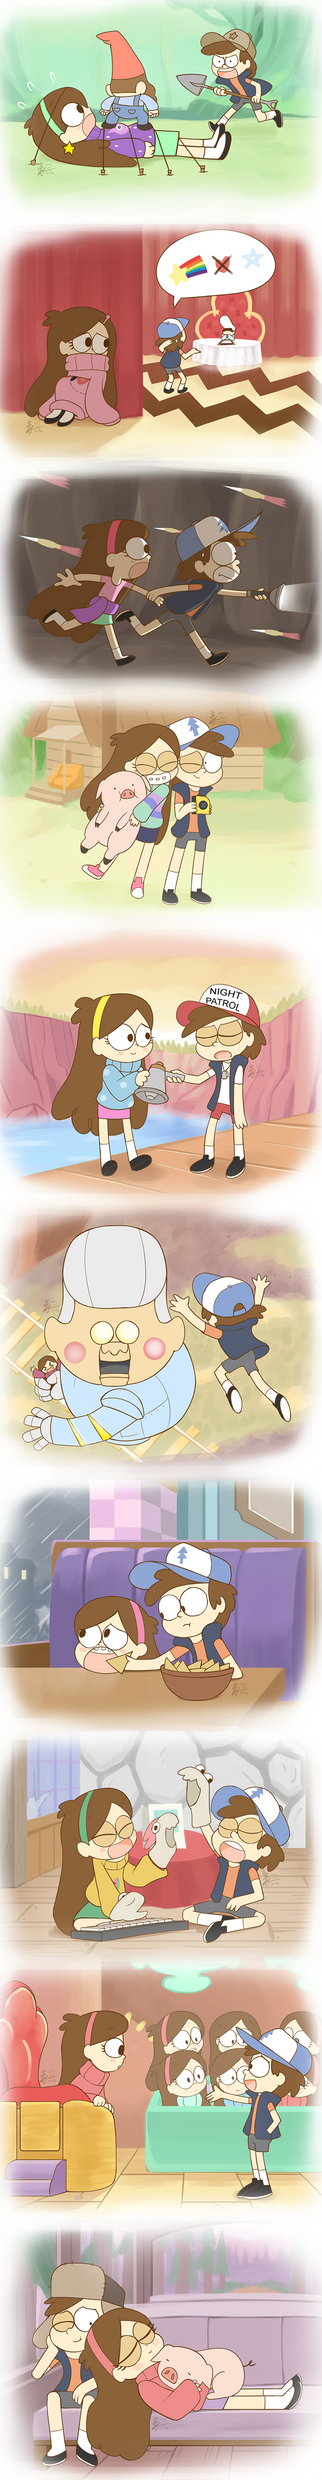 Weekly doodles Oct 11 Dipper is a great brother by HowXu